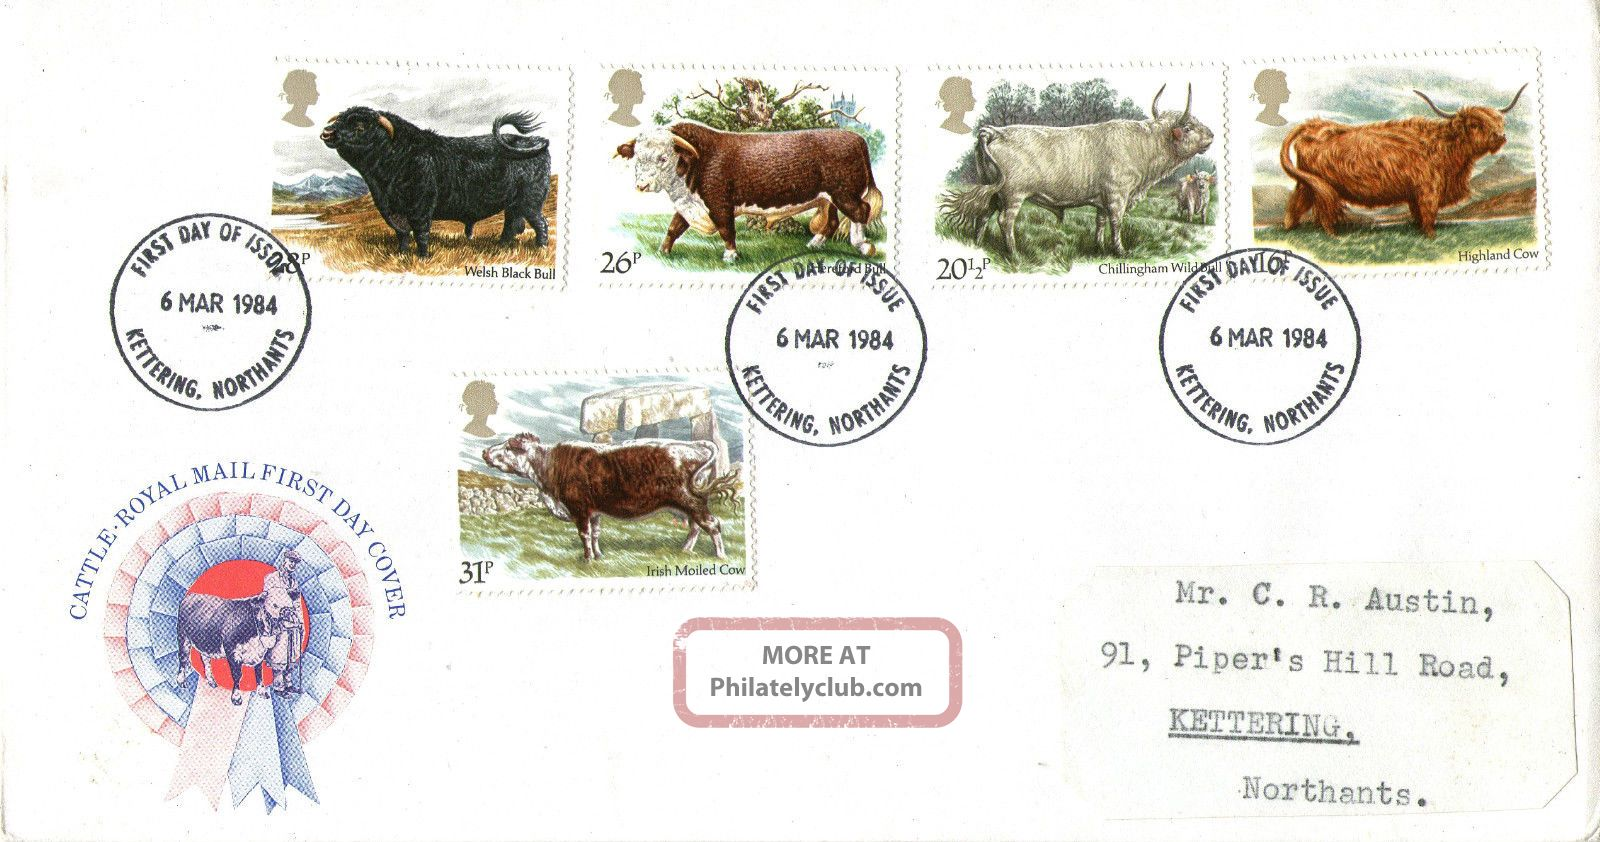 6 March 1984 British Cattle Royal Mail First Day Cover Kettering Northants Fdi Animal Kingdom photo